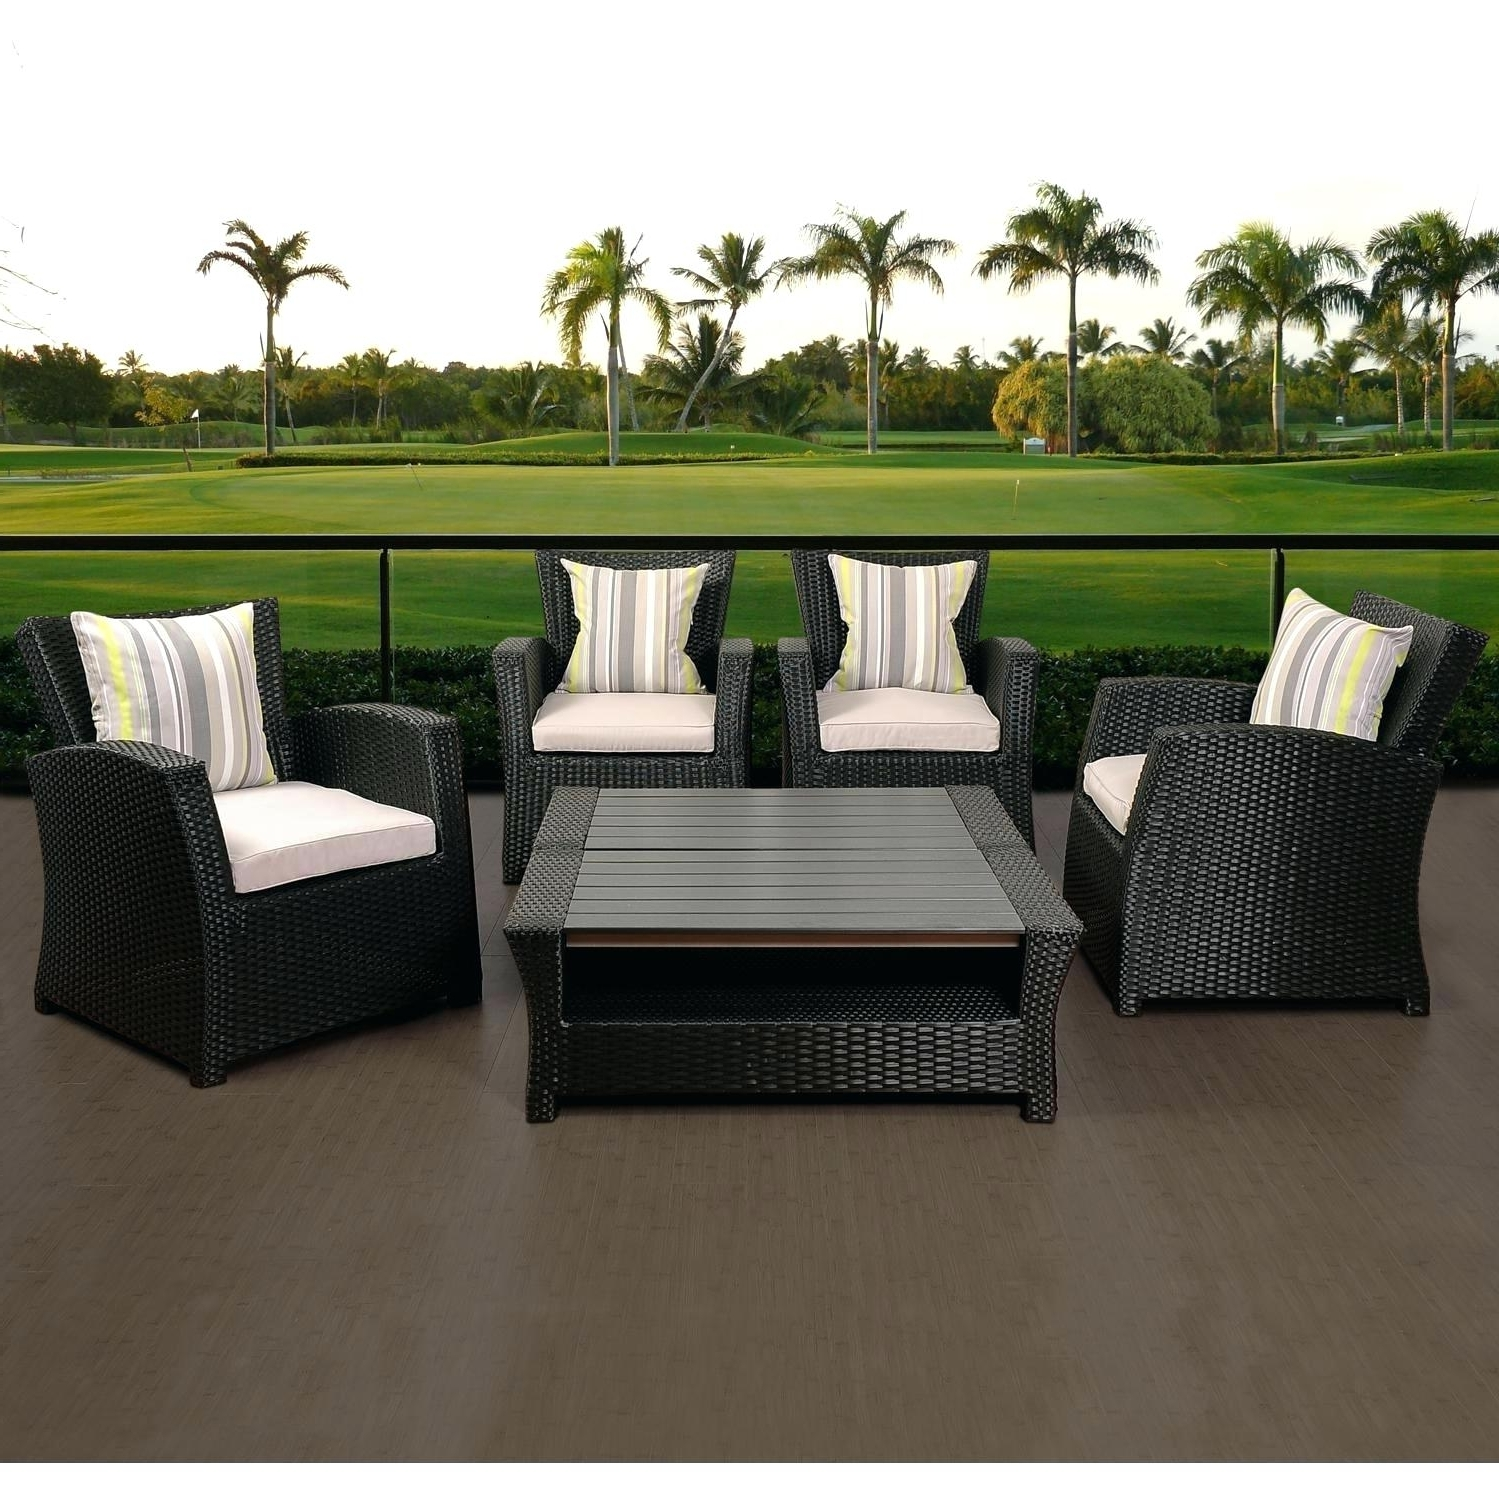 Conversation Patio Sets With Outdoor Sectionals With 2017 Conversation Sets Patio Set With Fire Pit Table Outdoor Sectionals (View 14 of 15)